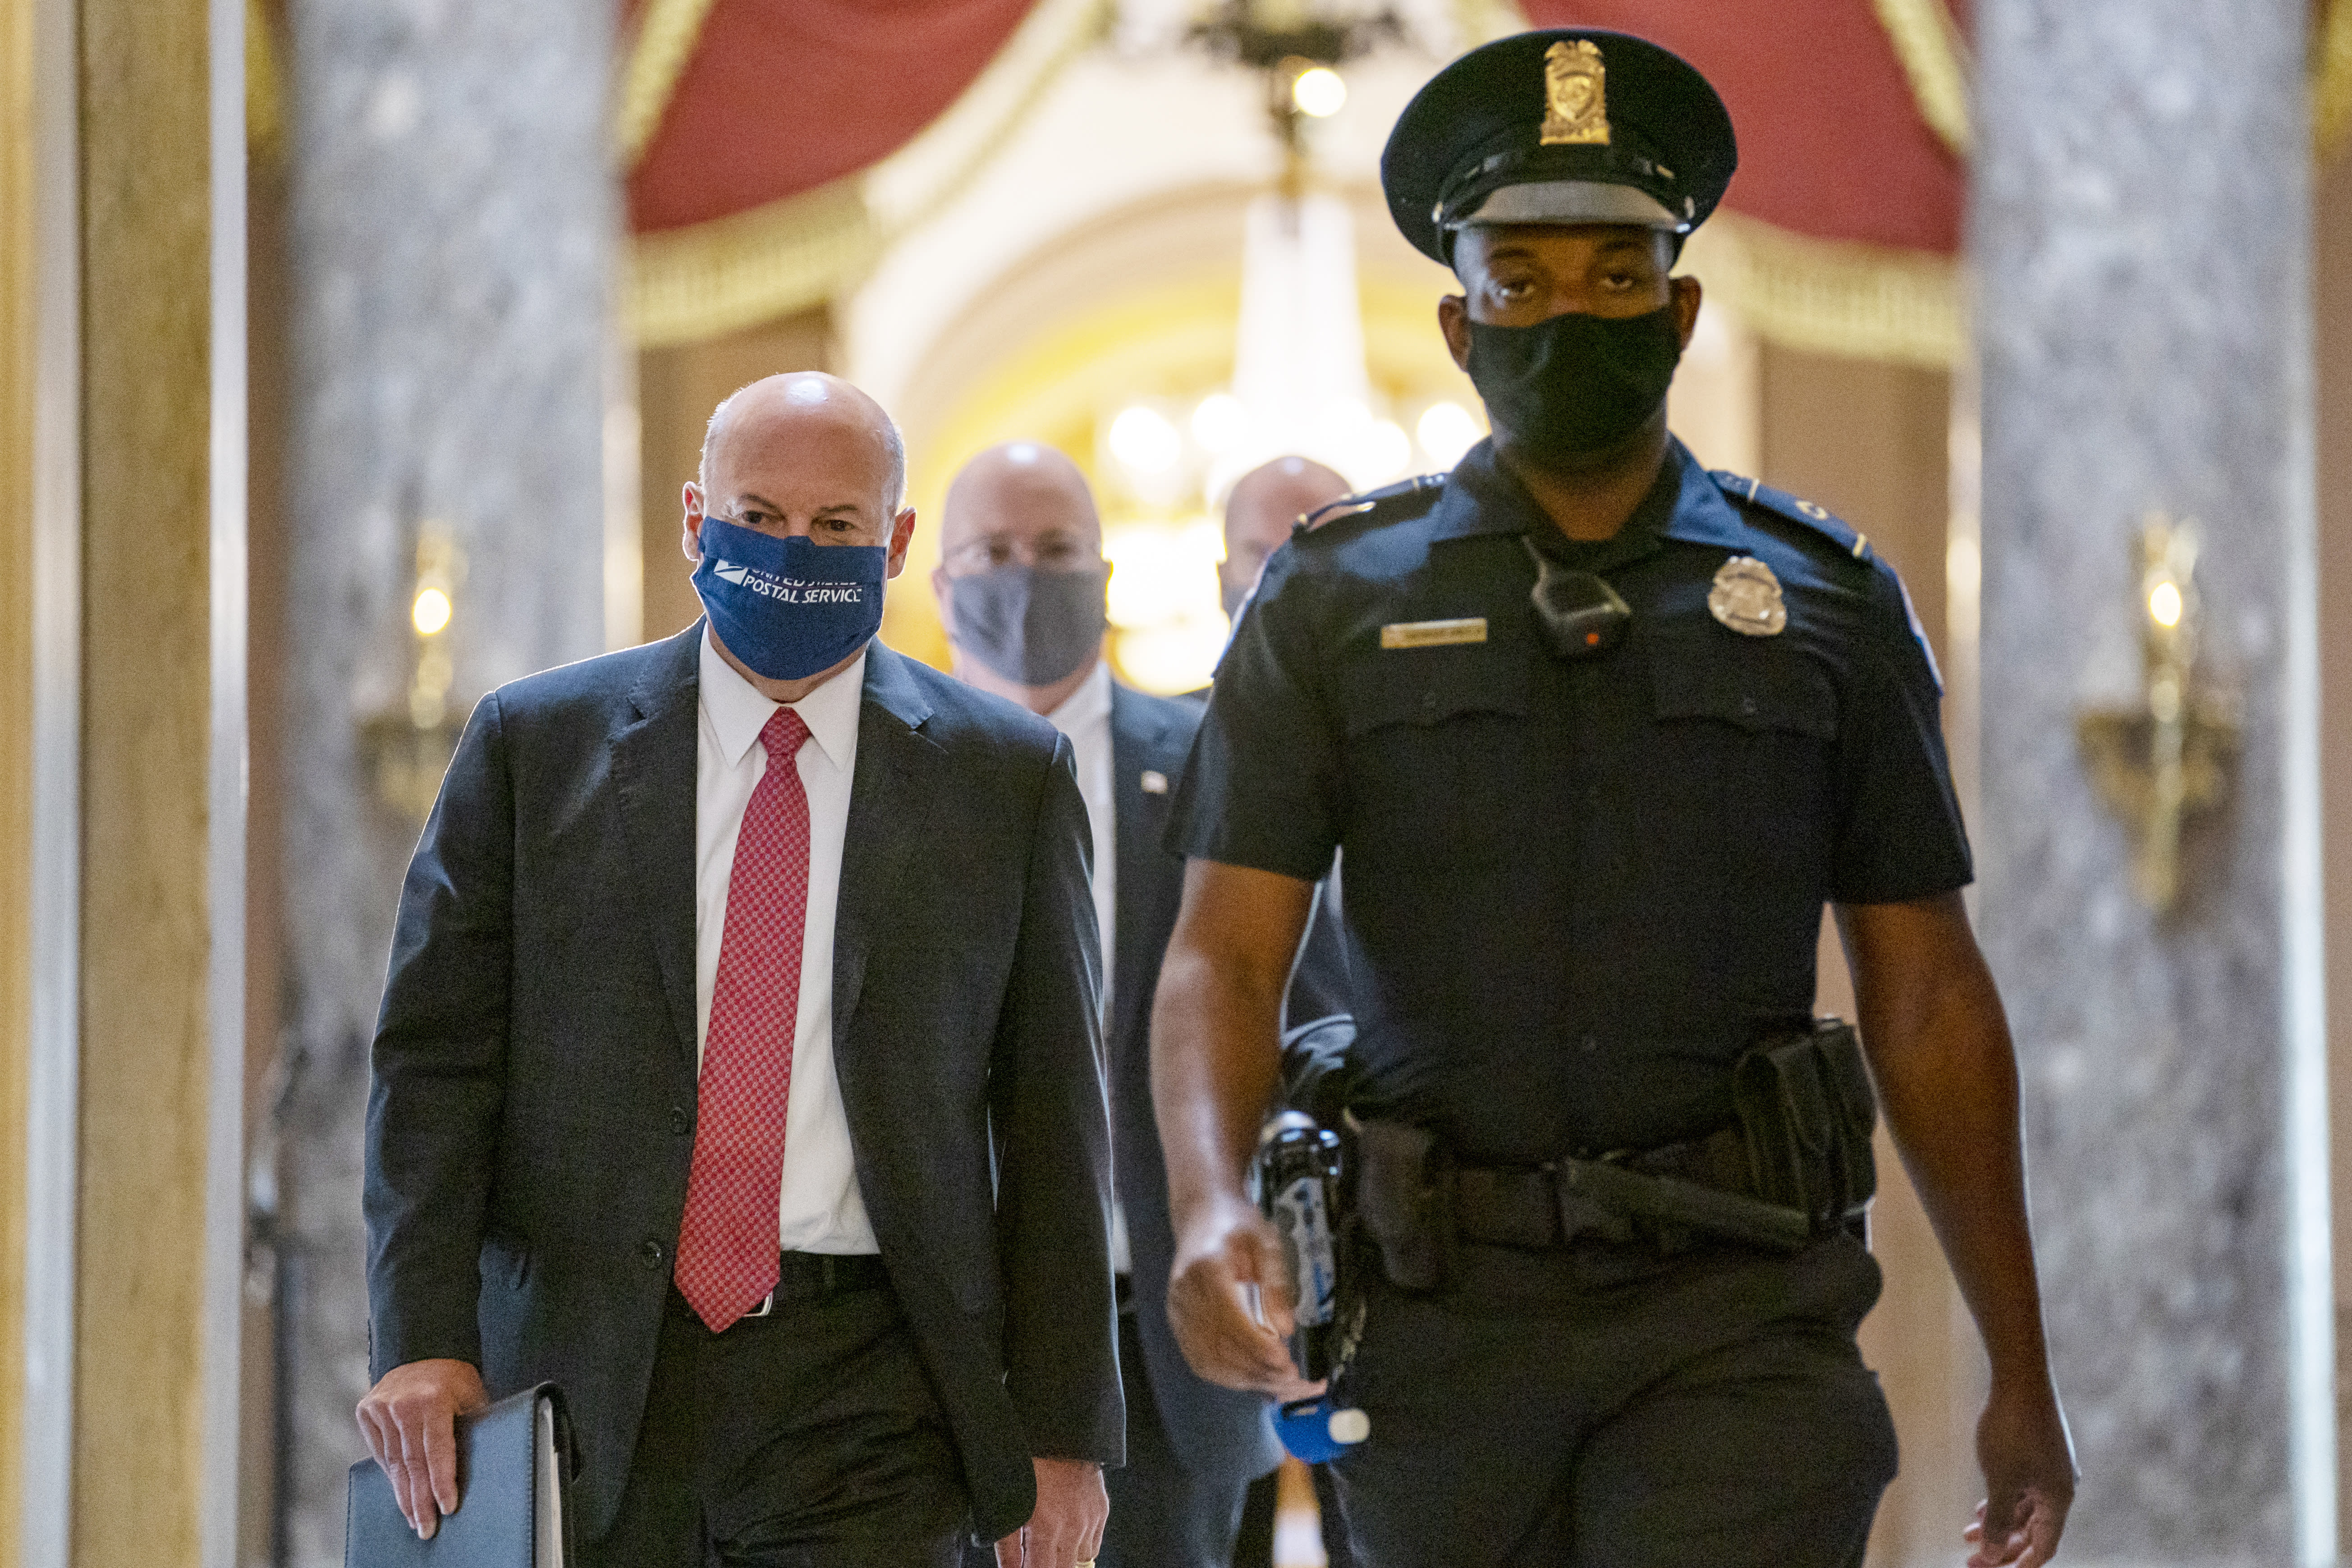 Postmaster General Louis DeJoy, left, is escorted to House Speaker Nancy Pelosi's office on Capitol Hill in Washington, Wednesday, Aug. 5, 2020. Some clarity is beginning to emerge from the bipartisan Washington talks on a huge COVID-19 response bill. An exchange of offers and meeting devoted to the Postal Service on Wednesday indicates the White House is moving slightly in House Speaker Nancy Pelosi's direction on issues like aid to states and local governments and unemployment insurance benefits. But the negotiations have a long ways to go. (AP Photo/Carolyn Kaster)